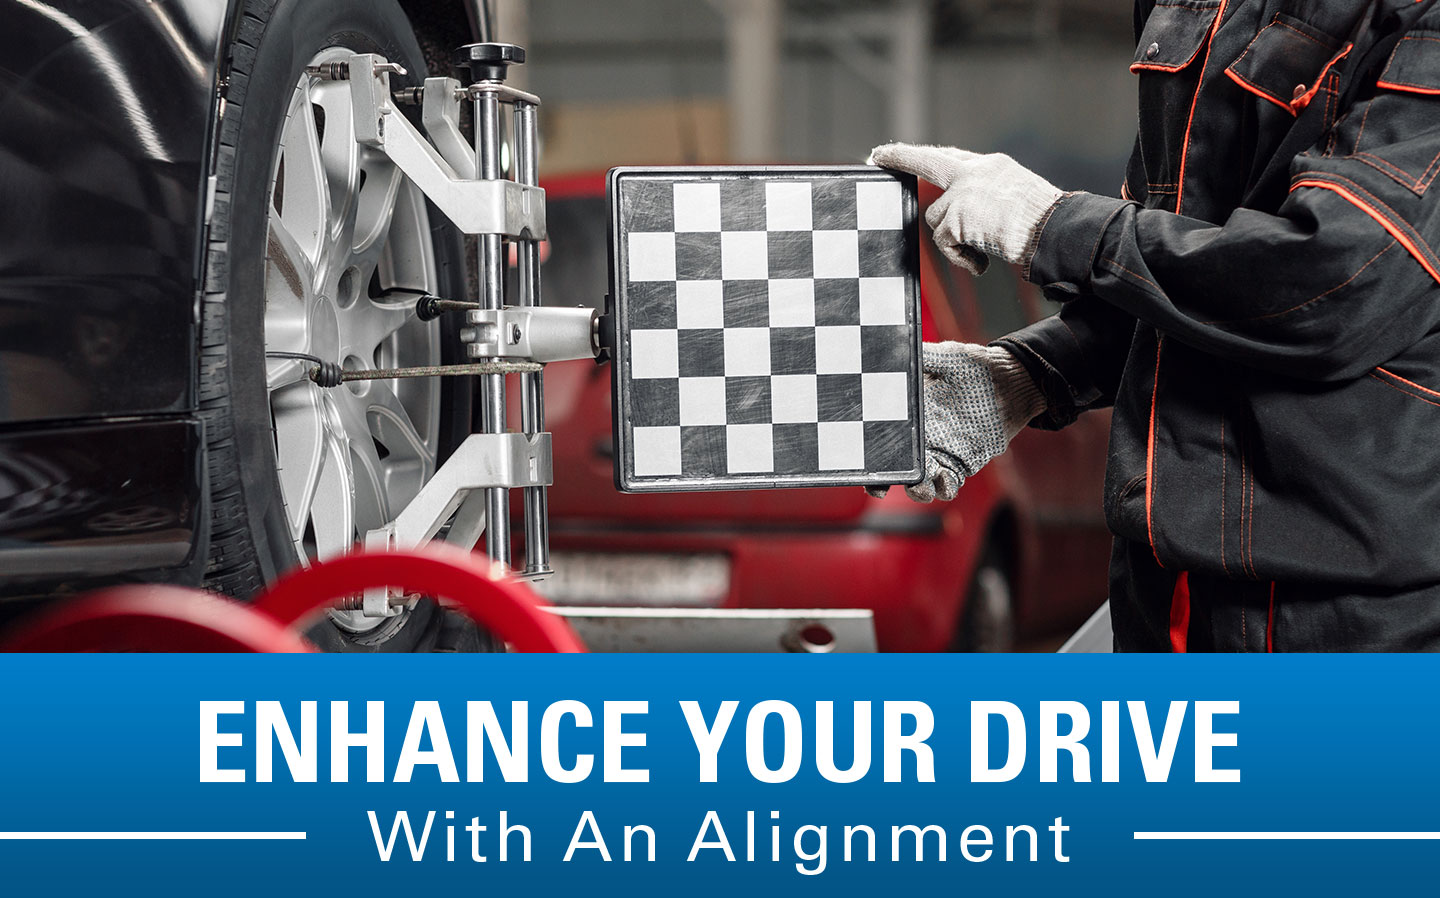 Enhance Your Drive